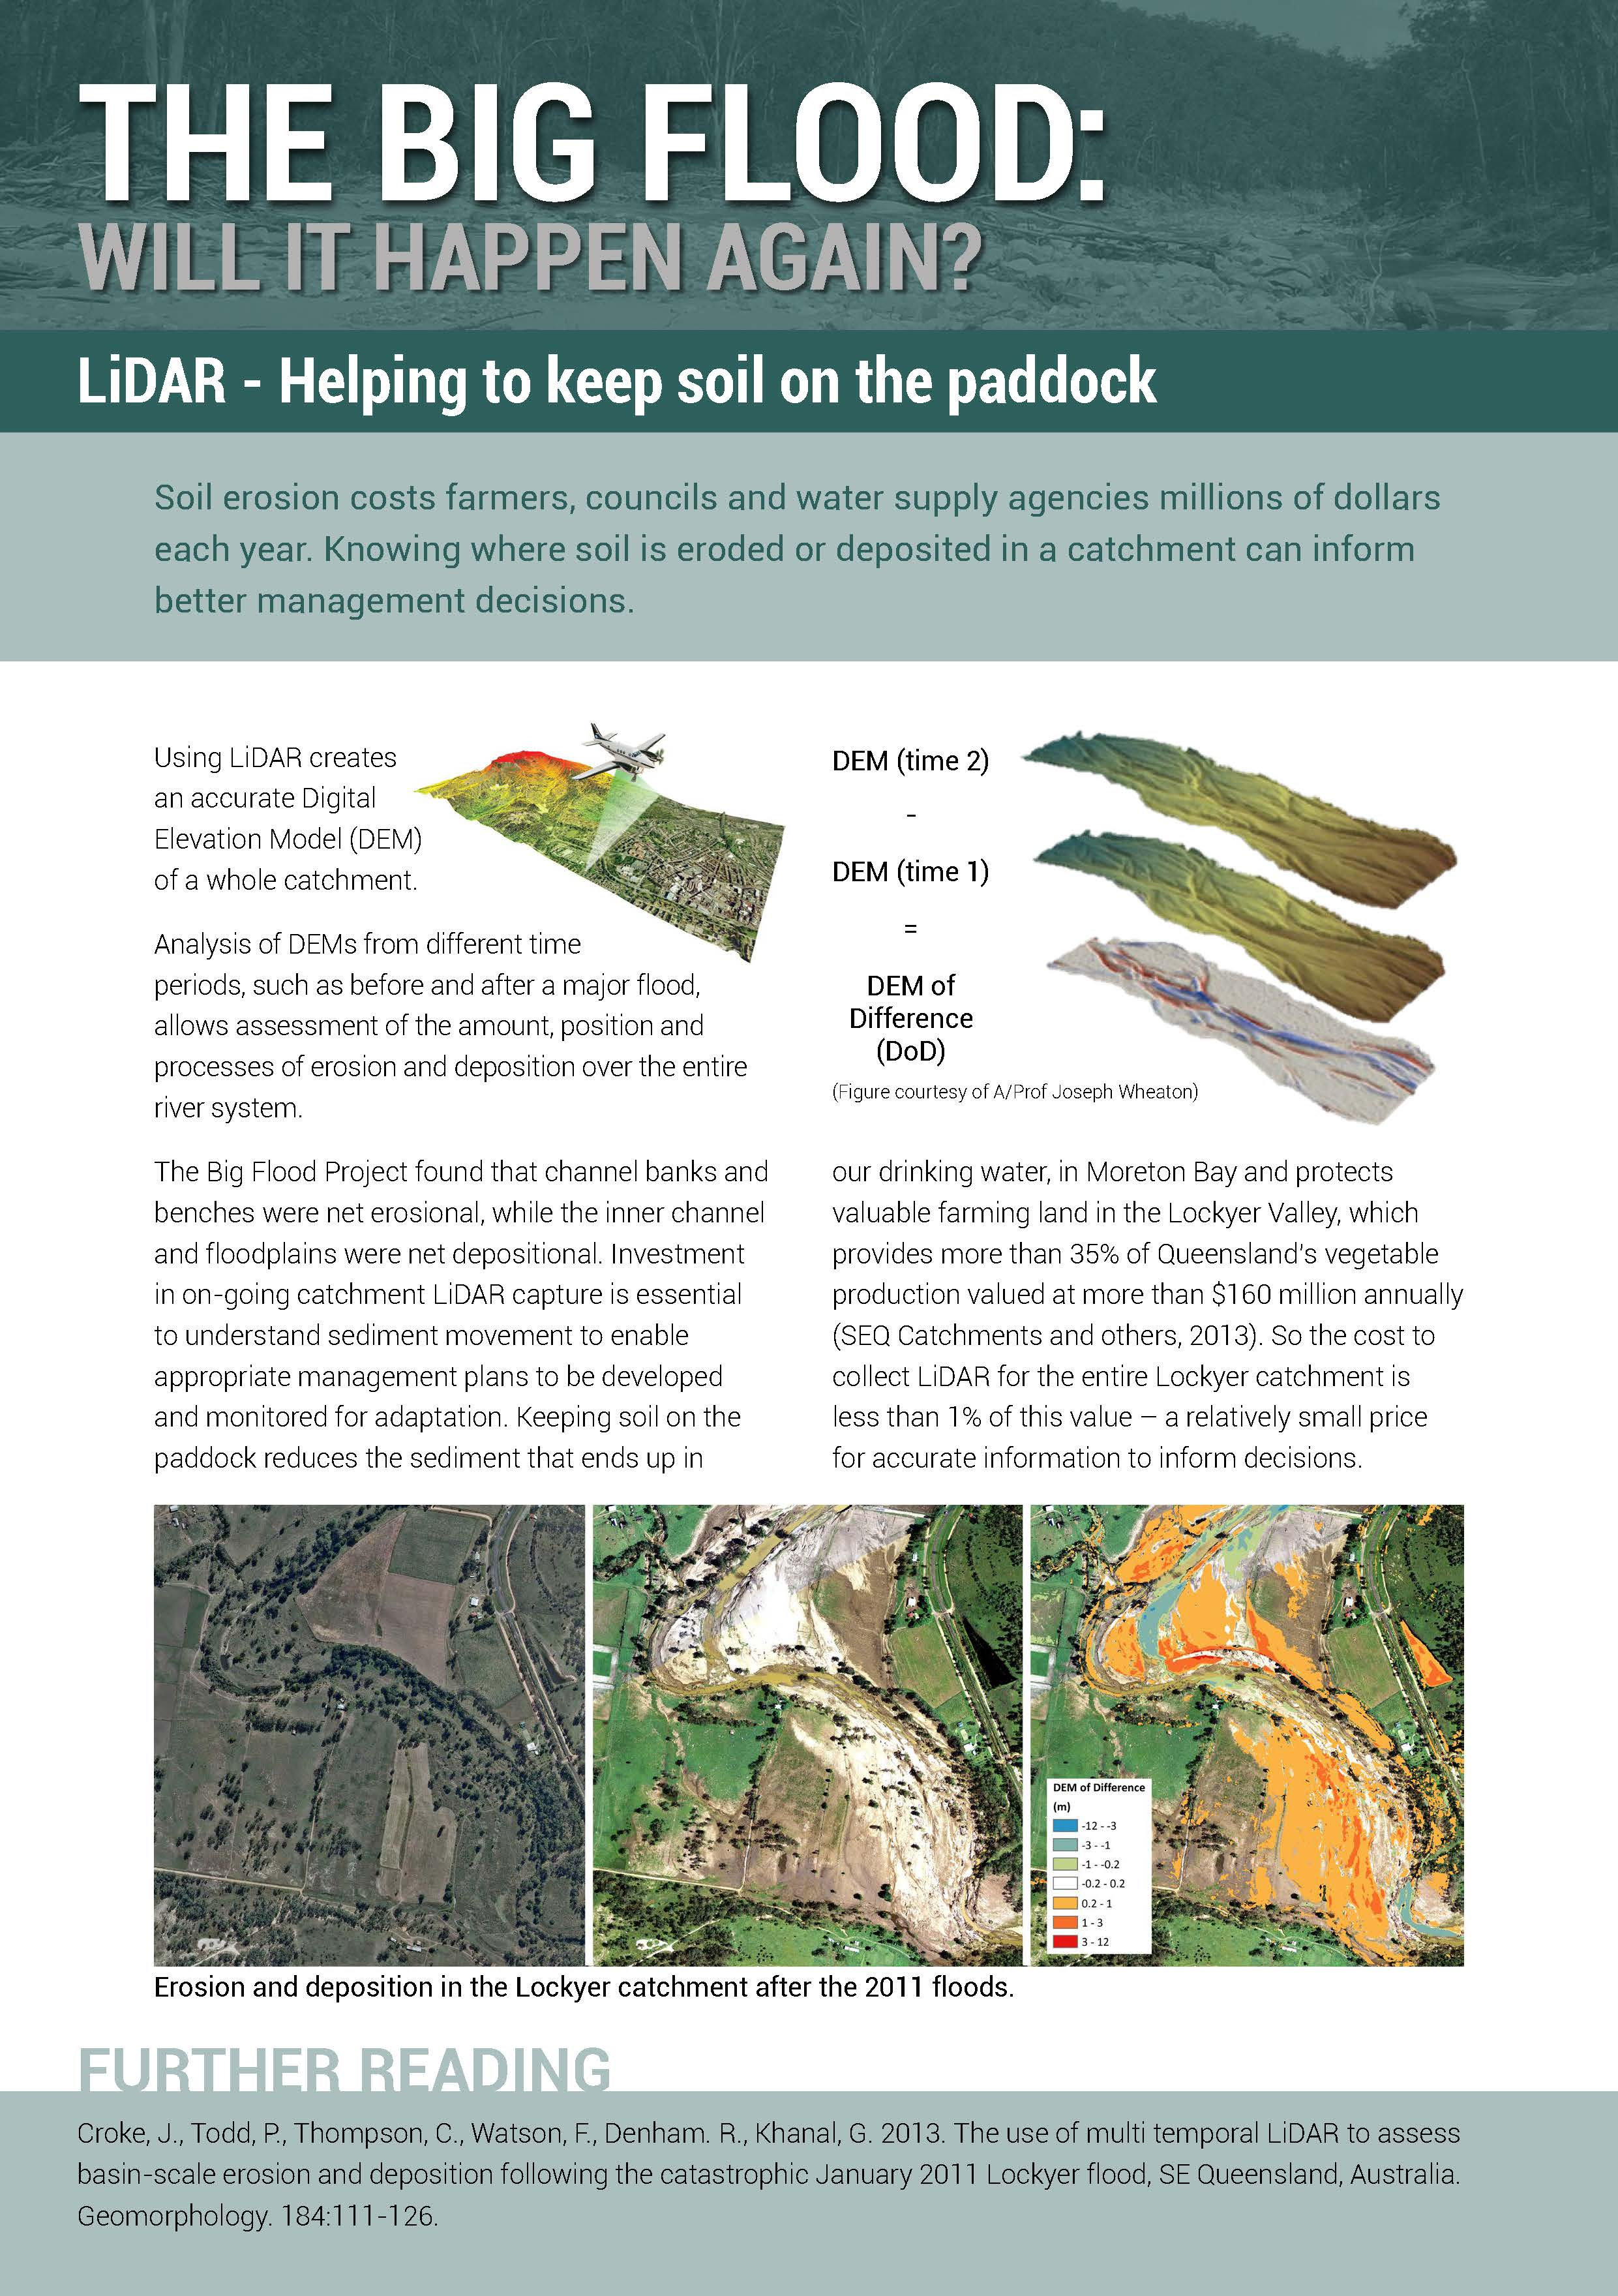 LiDAR - Helping to keep soil on the paddock